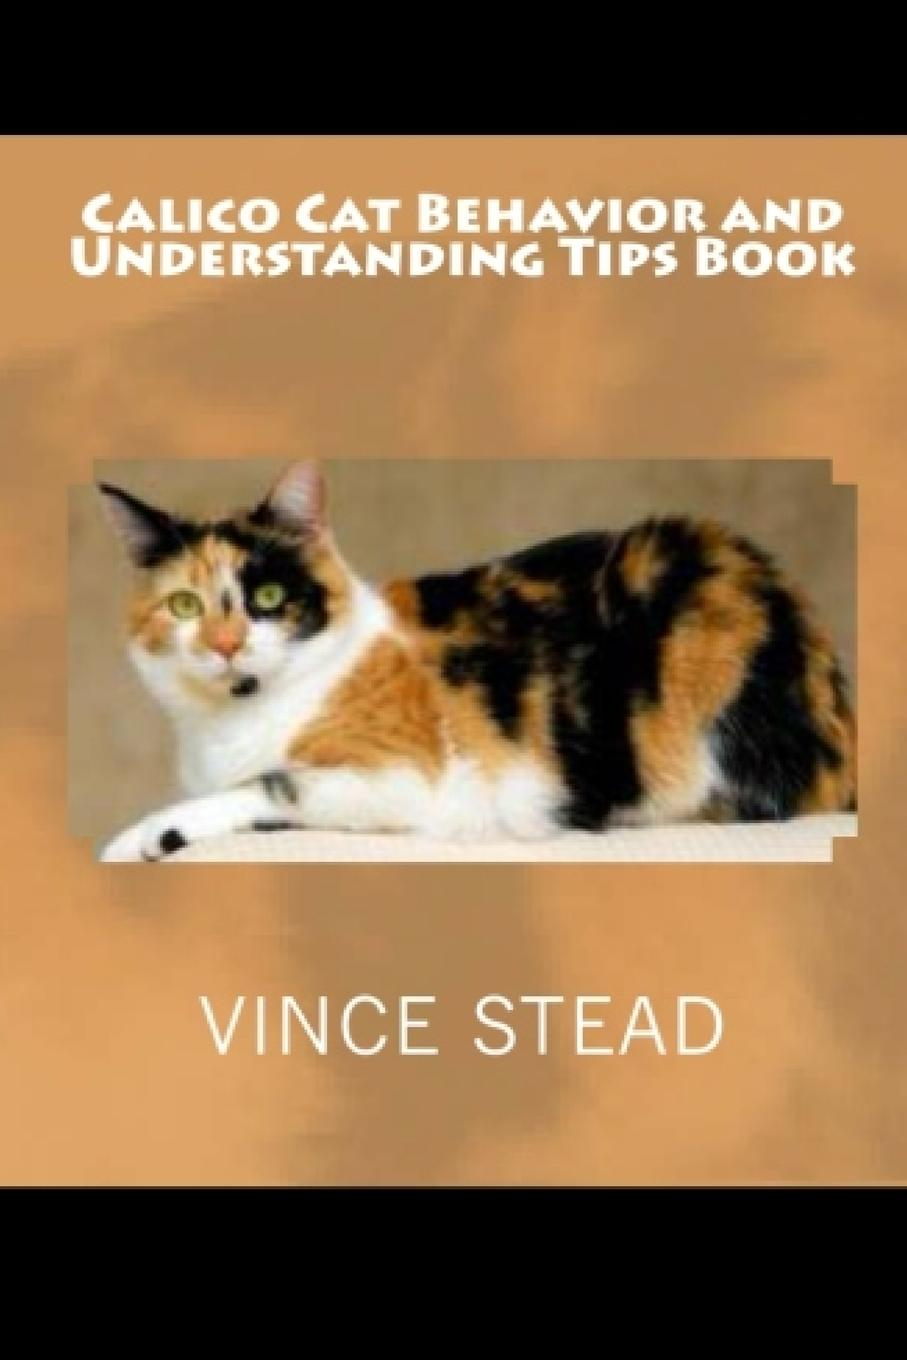 Vince Stead Calico Cat Behavior and Understanding Tips Book how to catch a cat